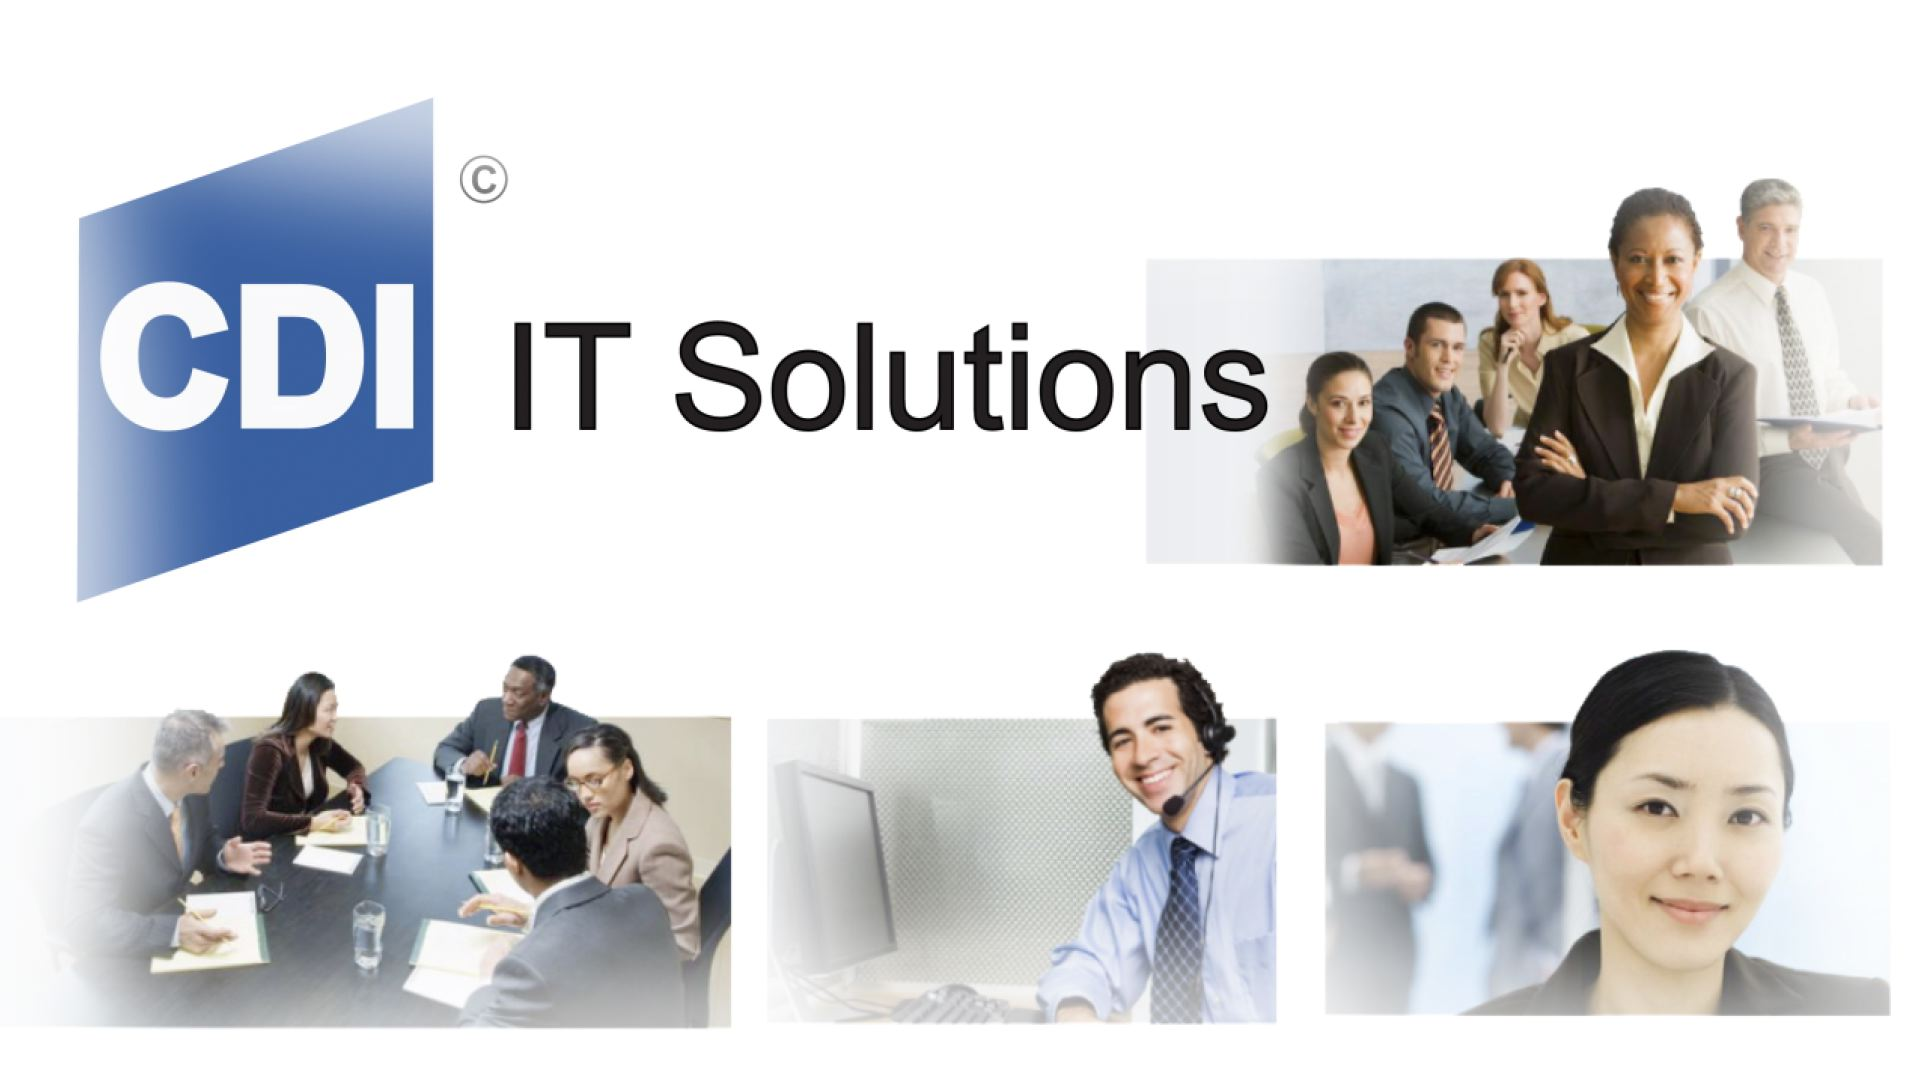 CDI IT Solutions Video Production